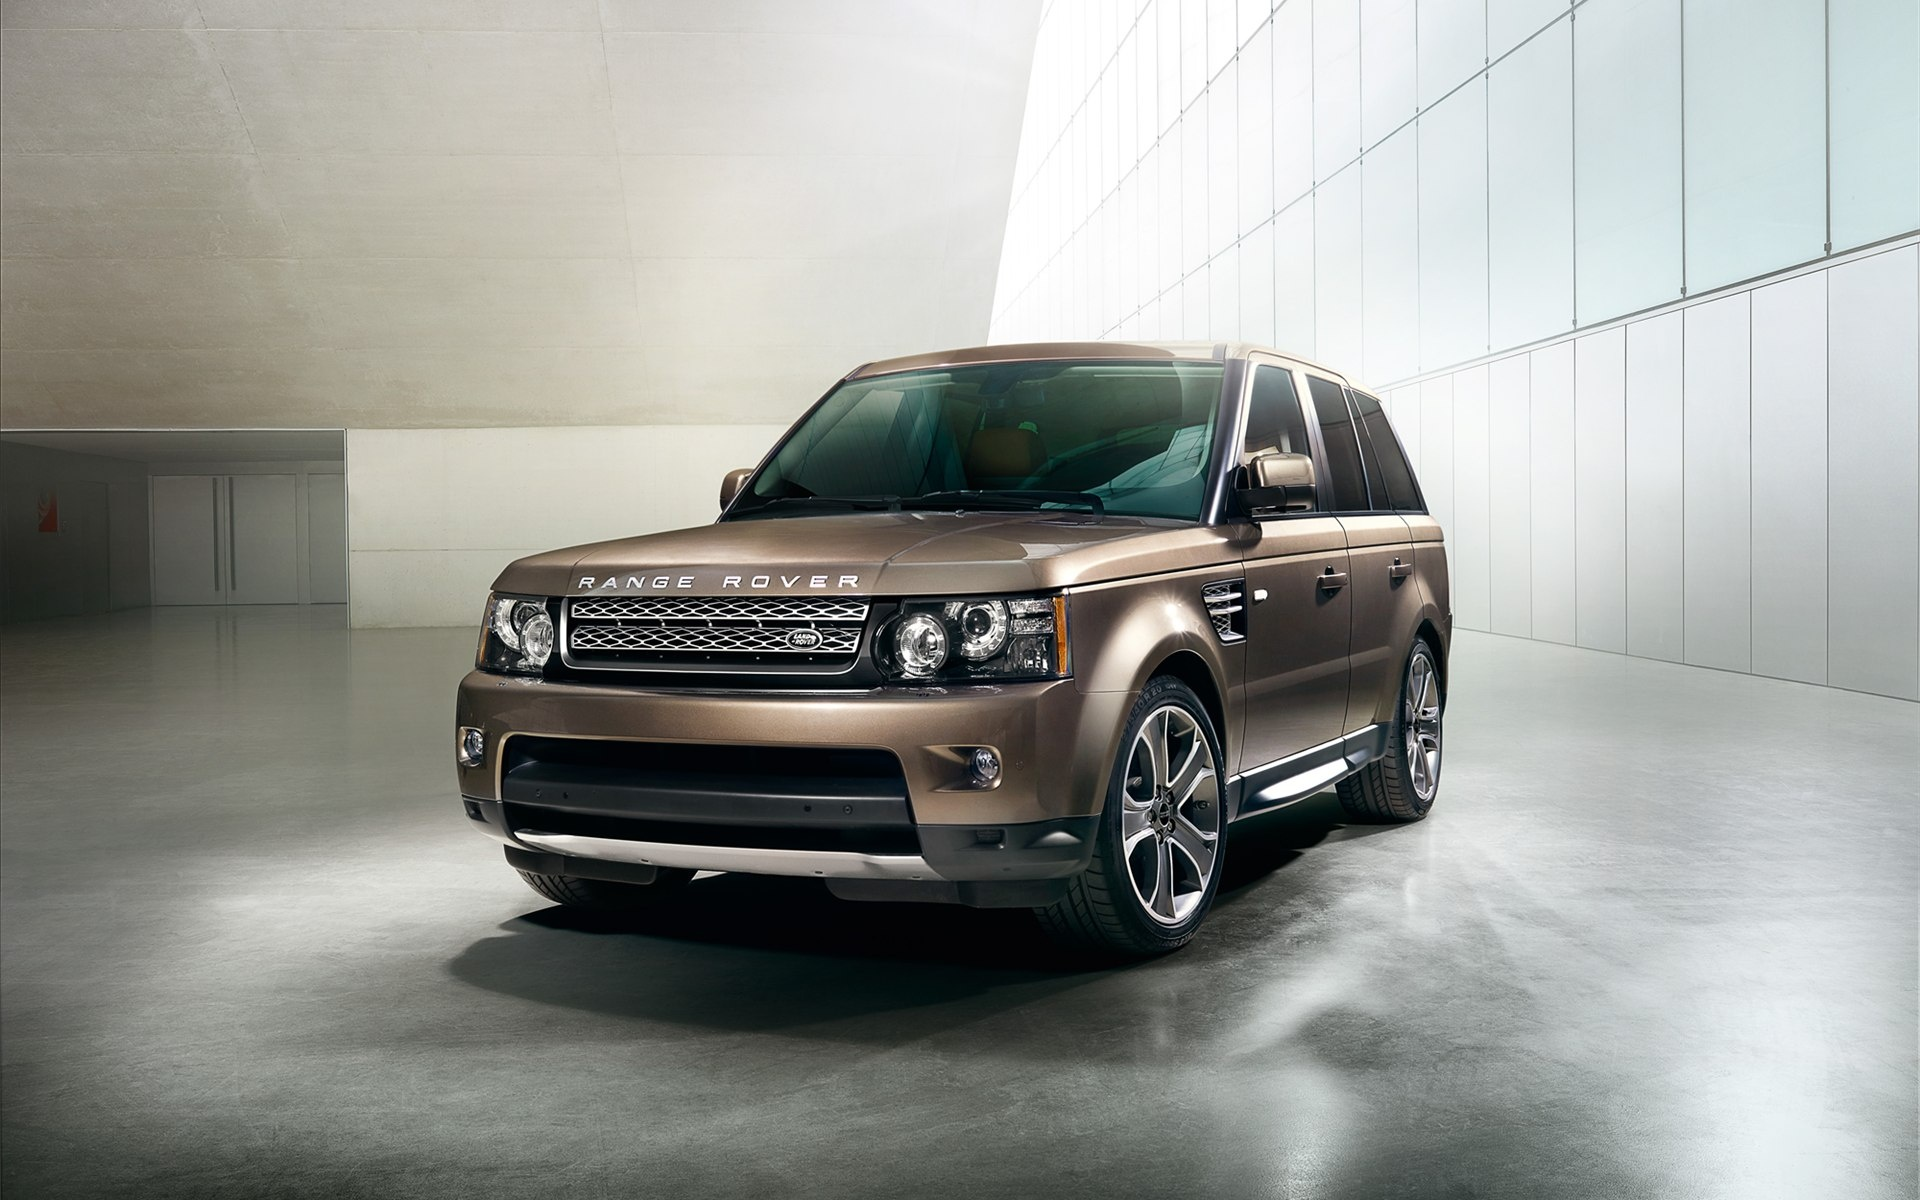 Range Rover Sport Wallpapers in jpg format for free